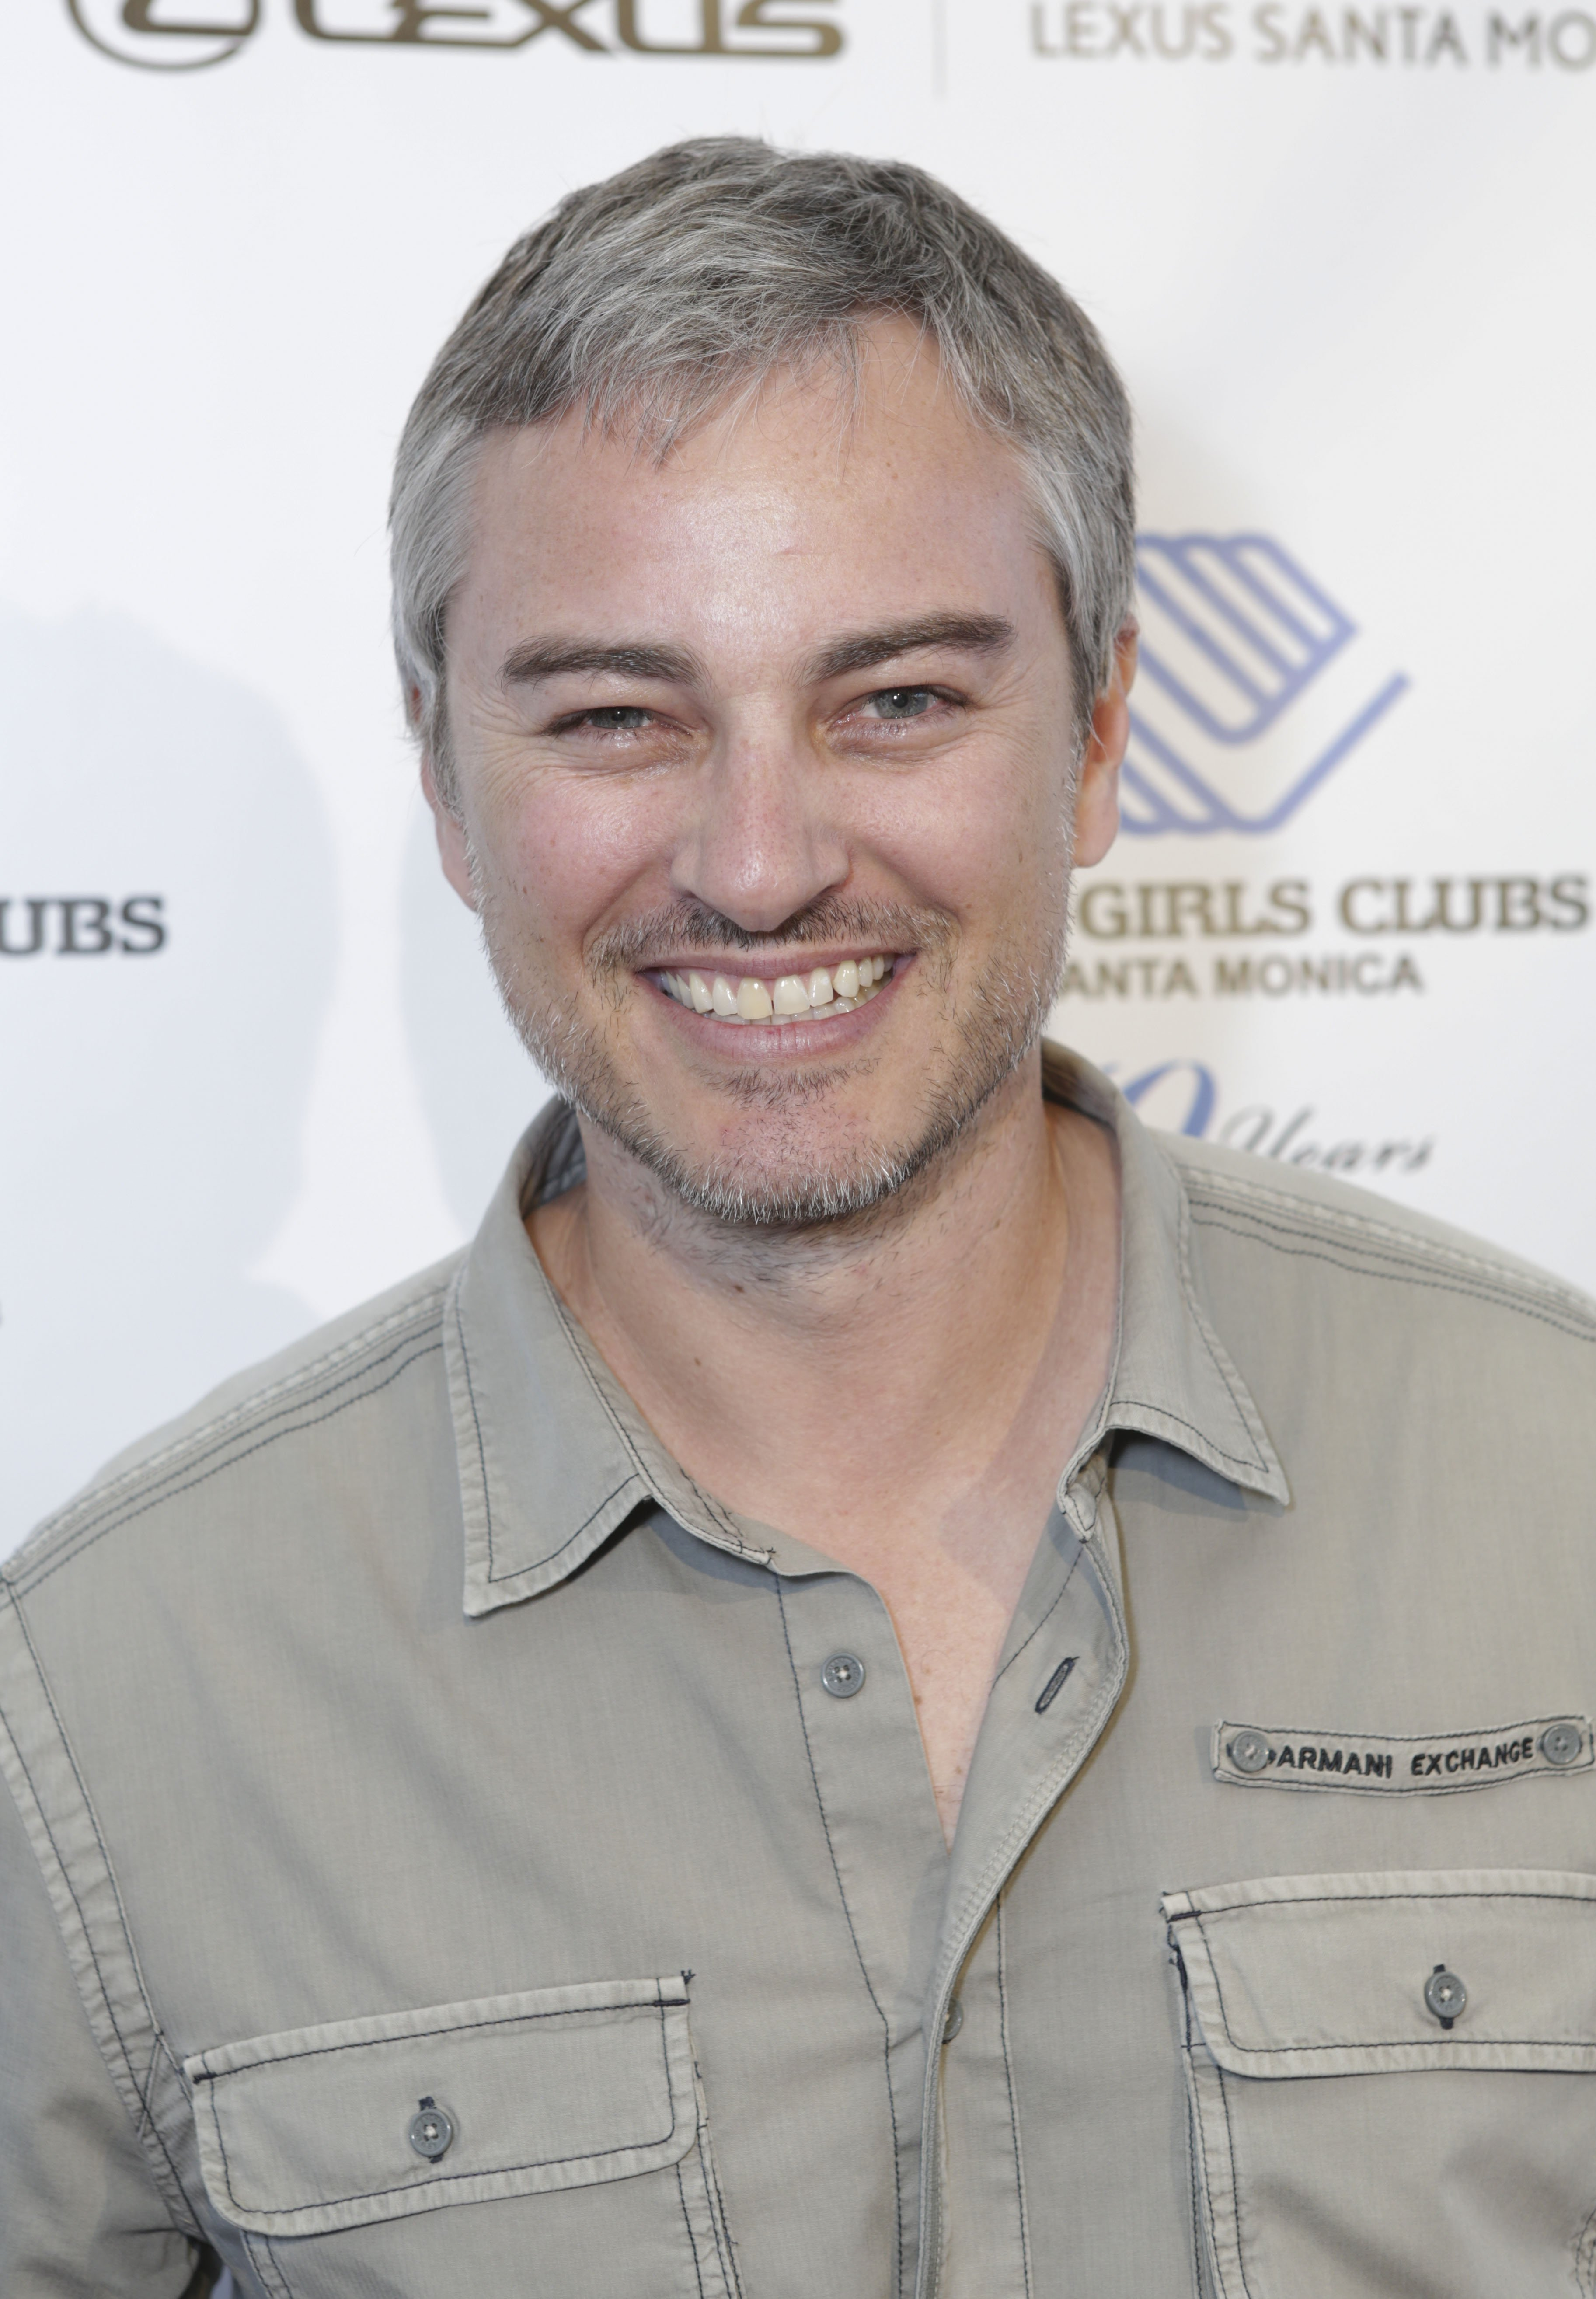 Kerr Smith at Lexus Santa Monica on April 24, 2014 | Photo: Getty Images